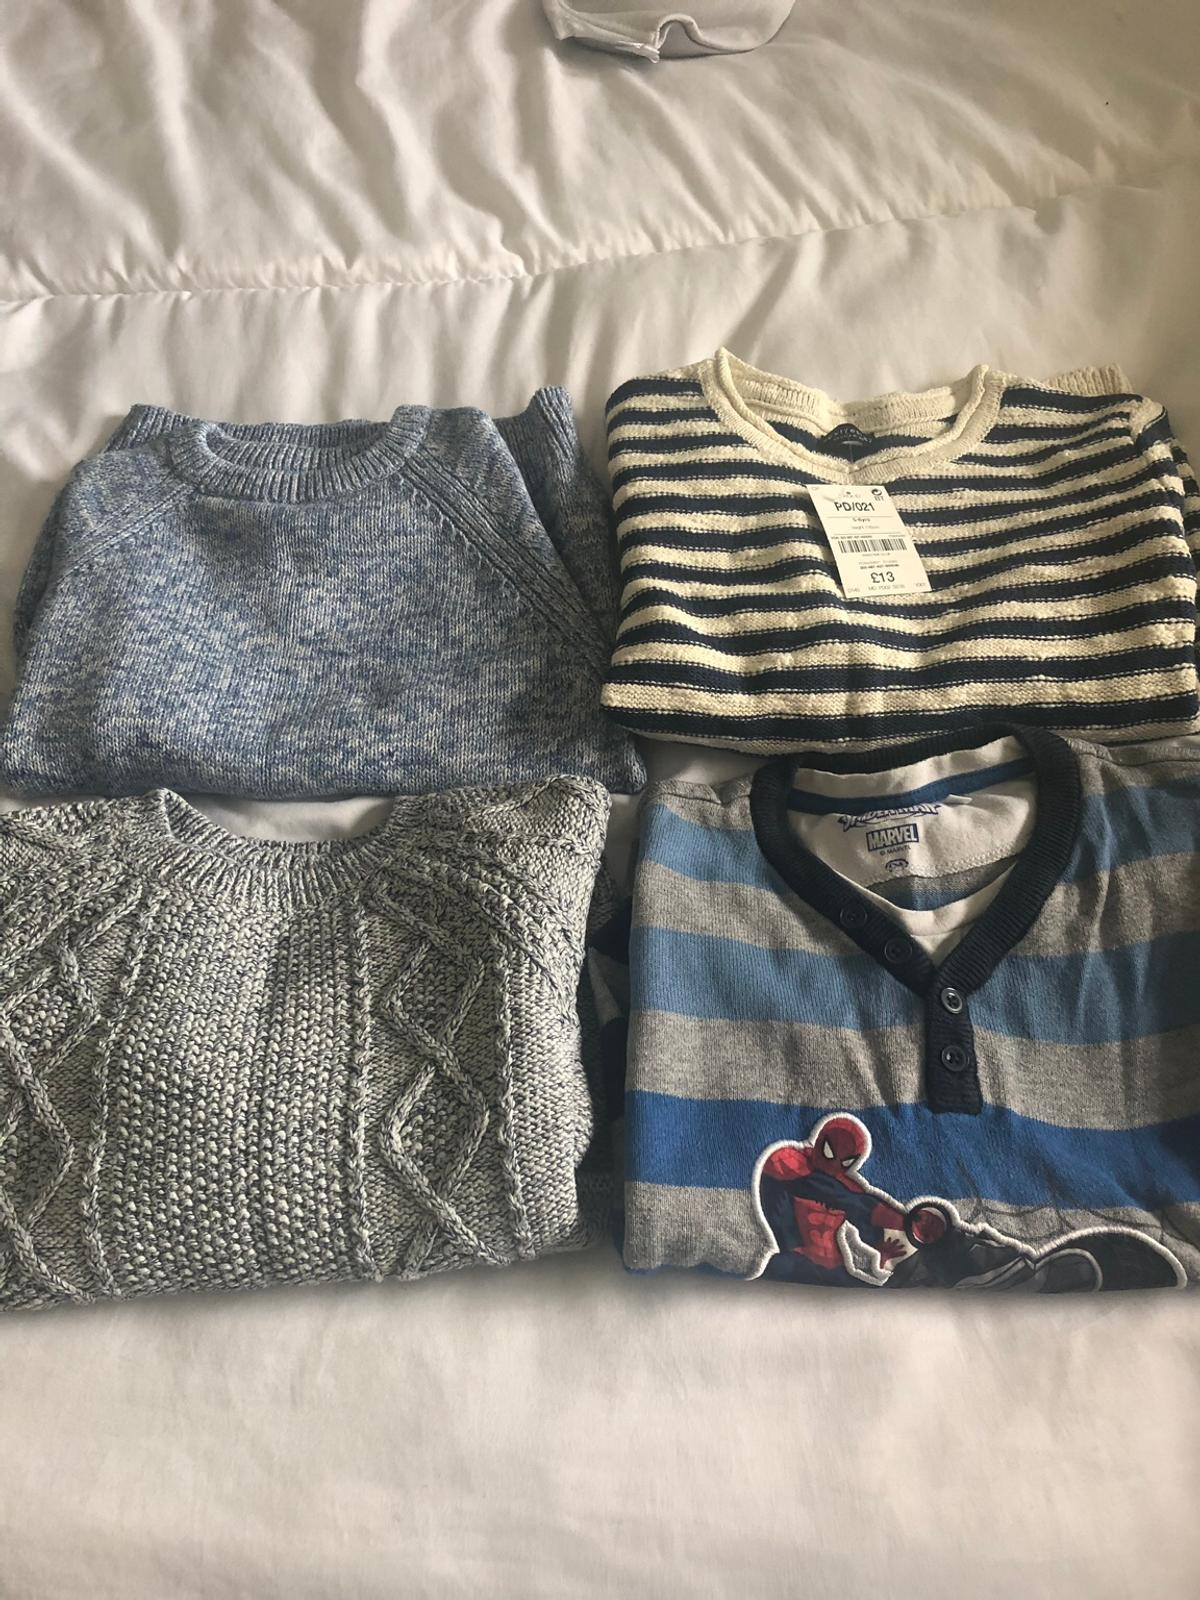 Boys jumpers age 5/6 one of the jumpers still as tag on and still all in good condition